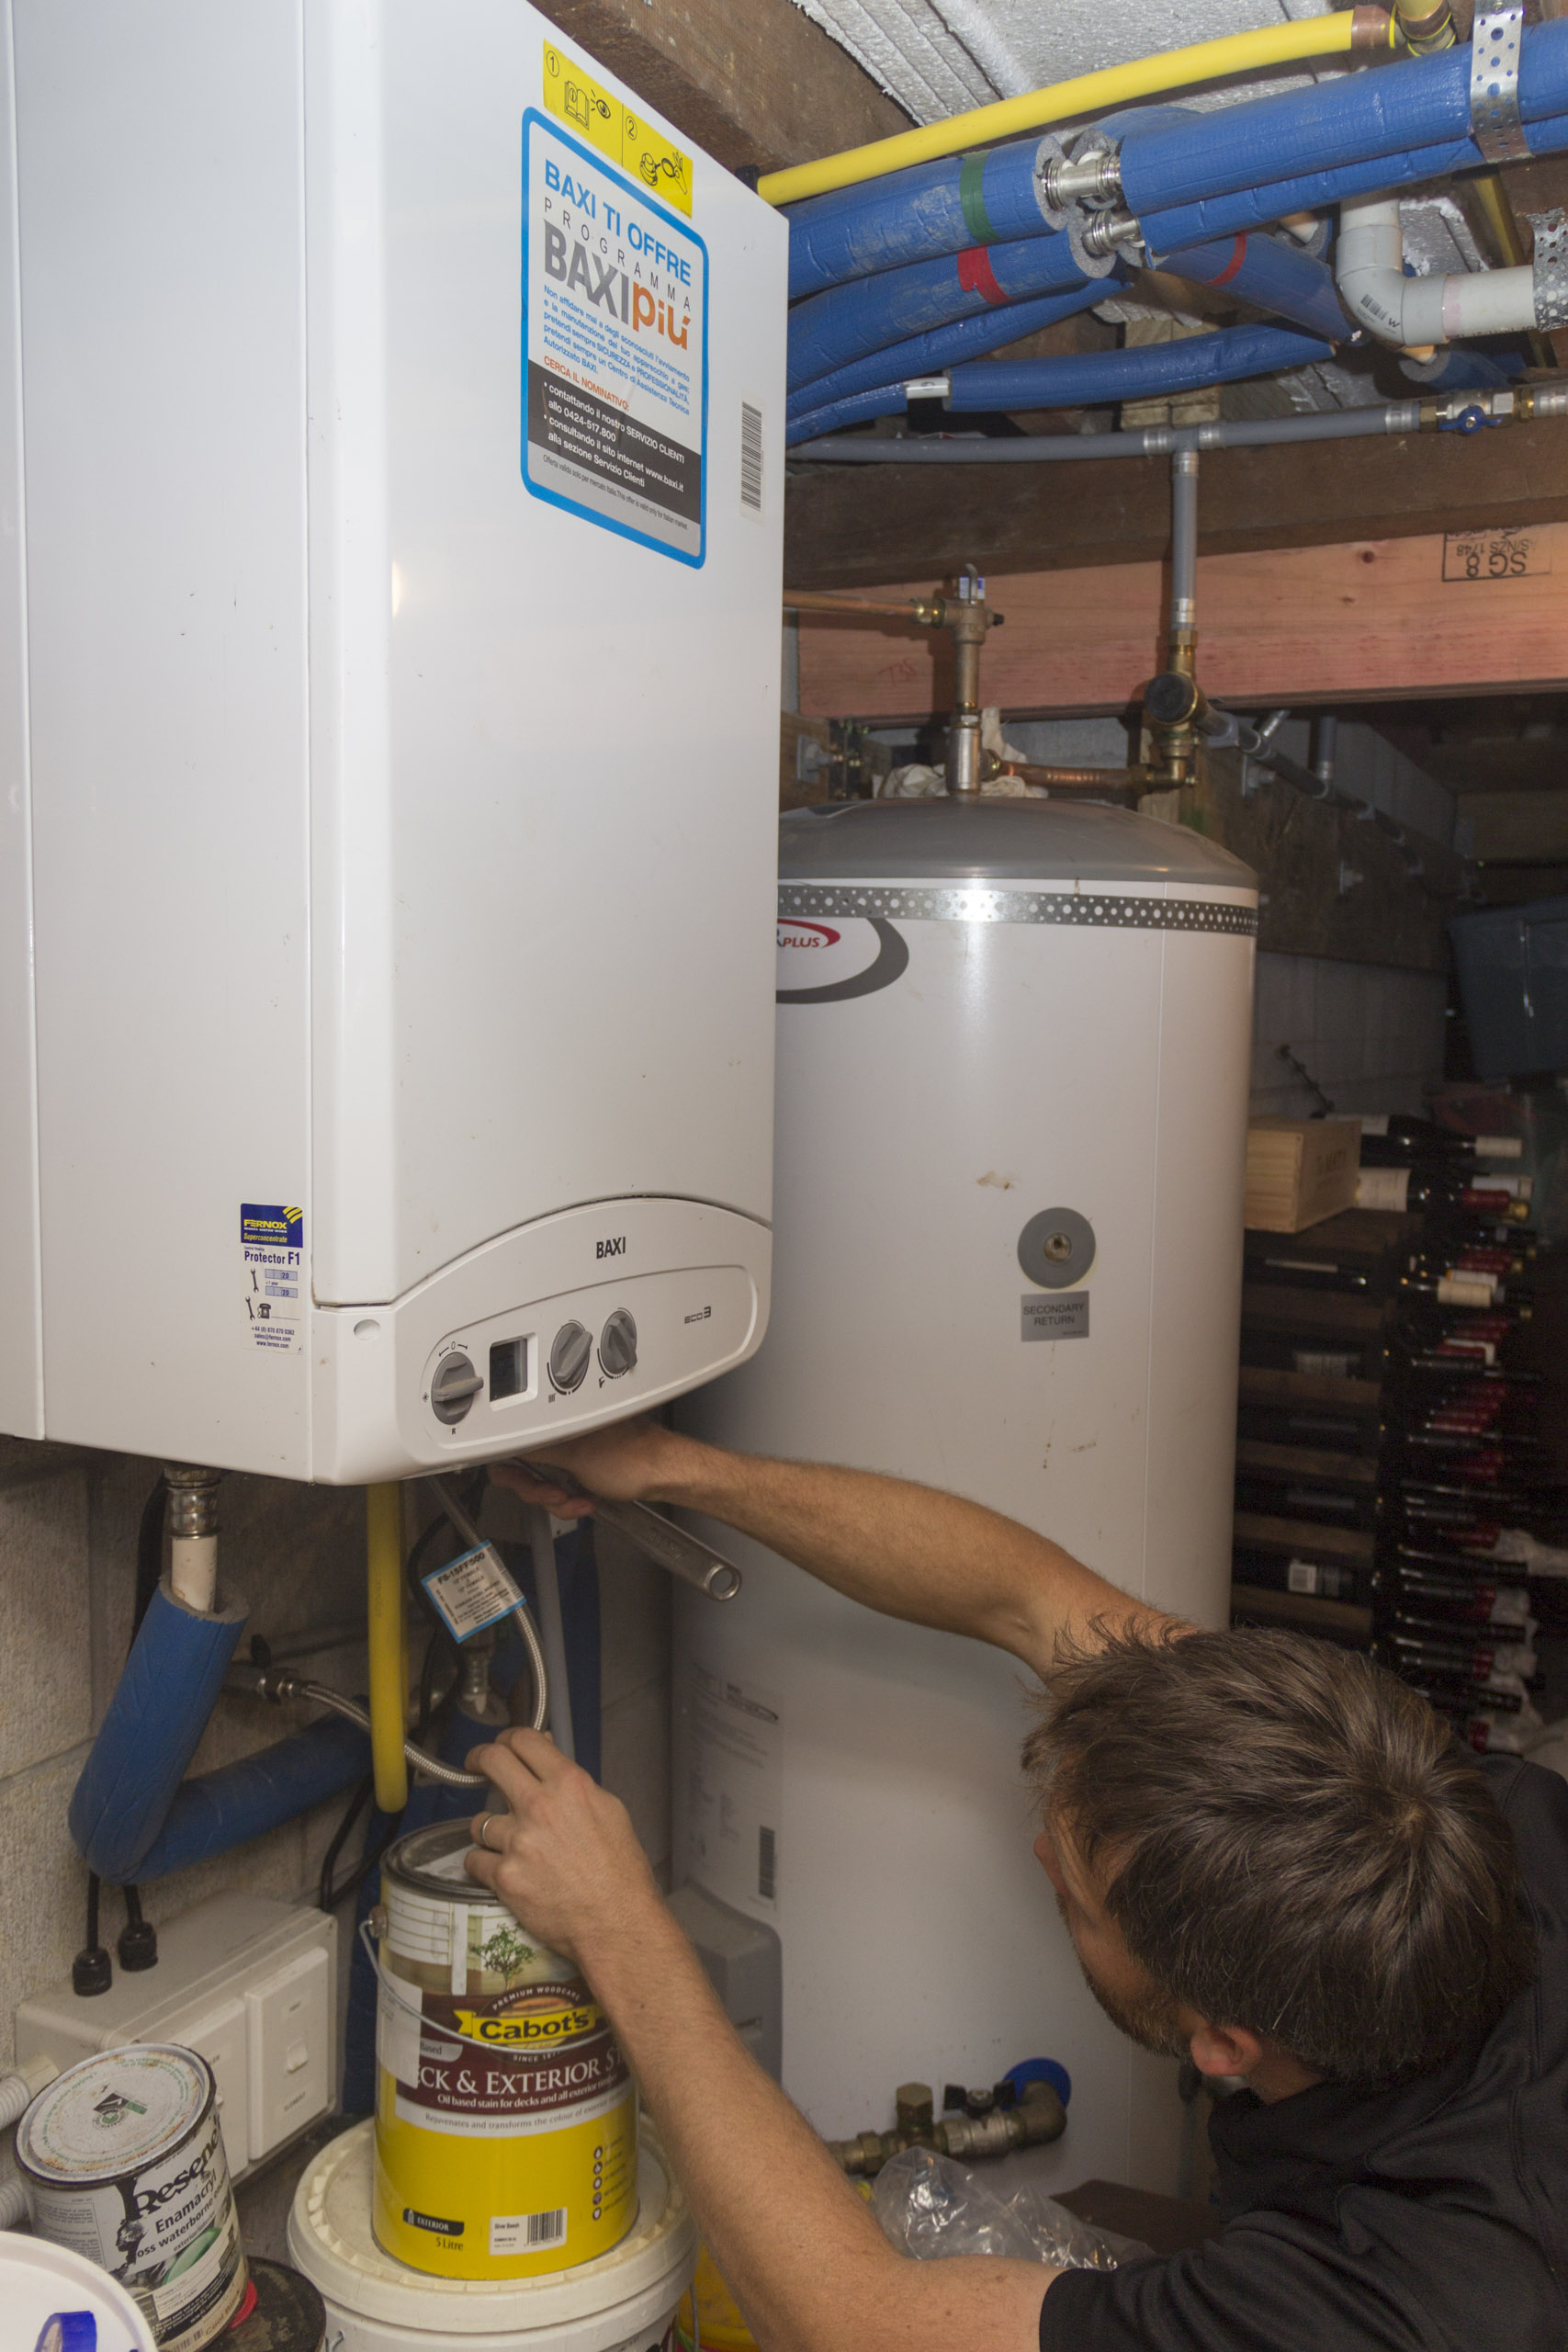 Servicing a central heating boiler